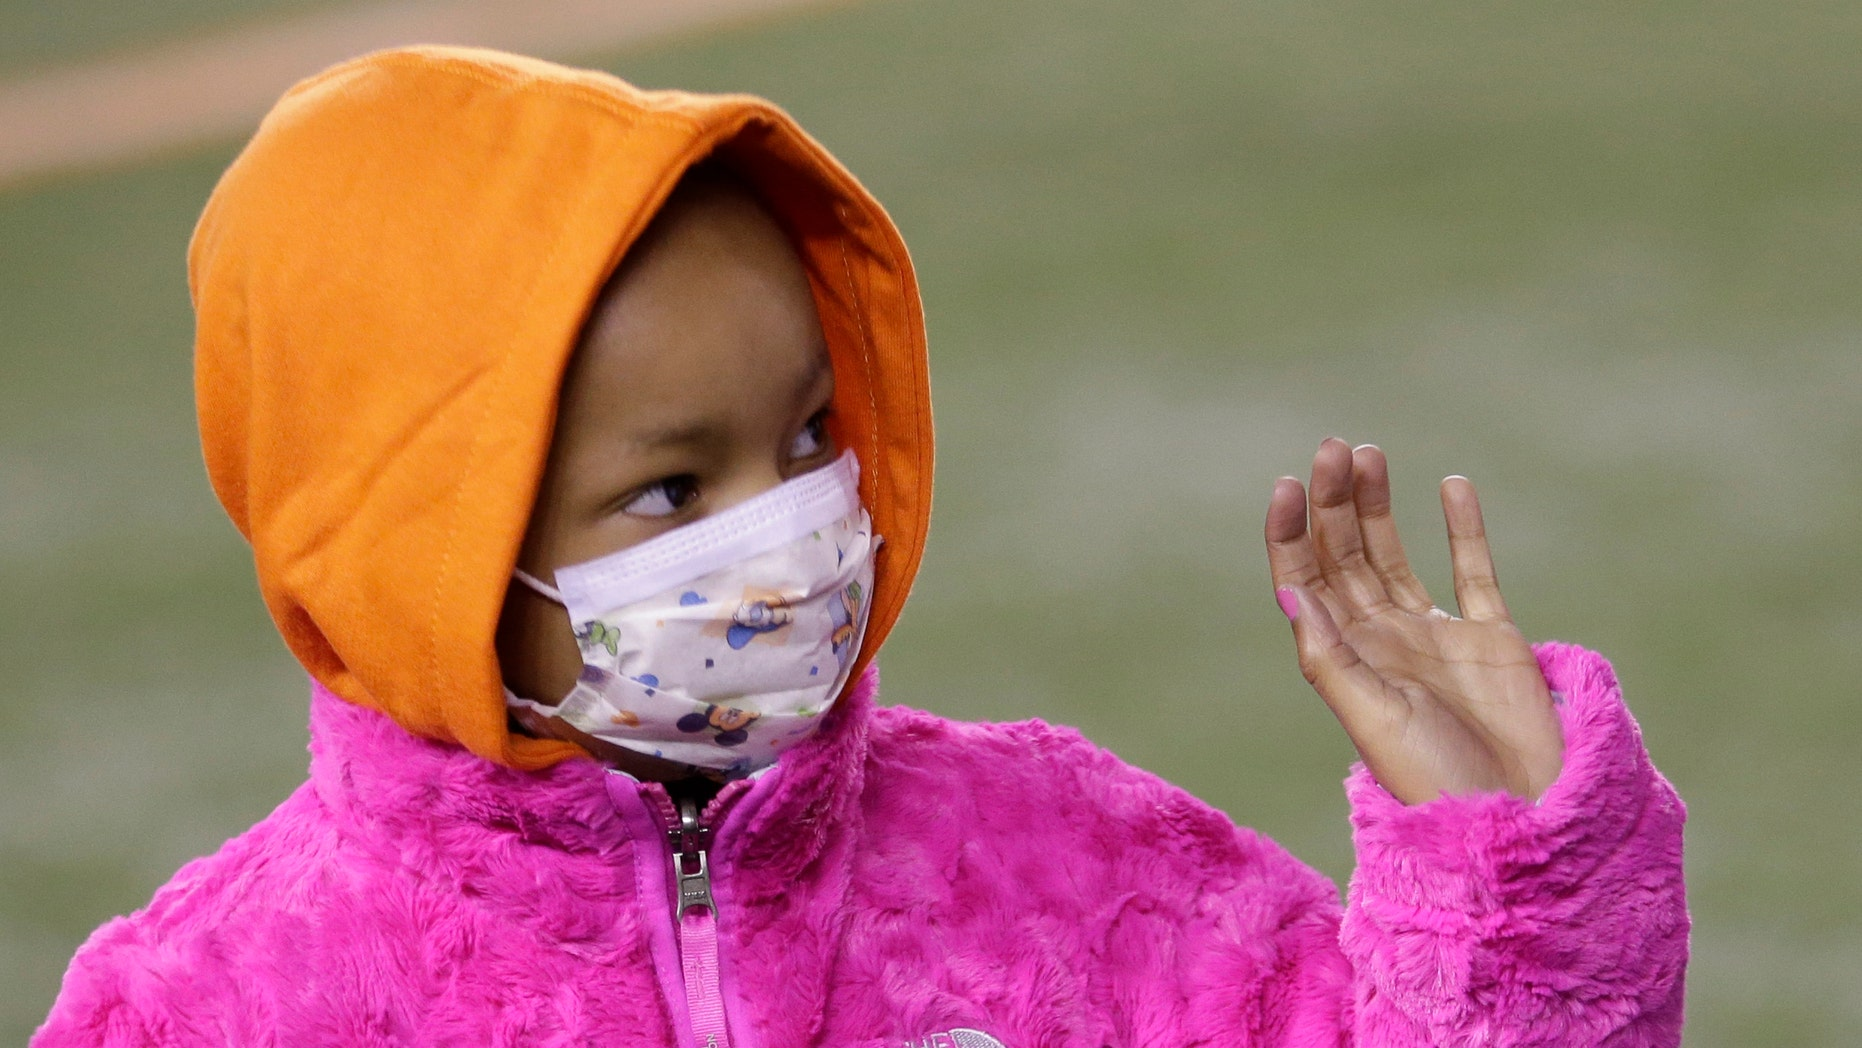 Nov. 6, 2014: Leah Still waves during a ceremony in the first half of an NFL football game between the Cincinnati Bengals and the Cleveland Browns